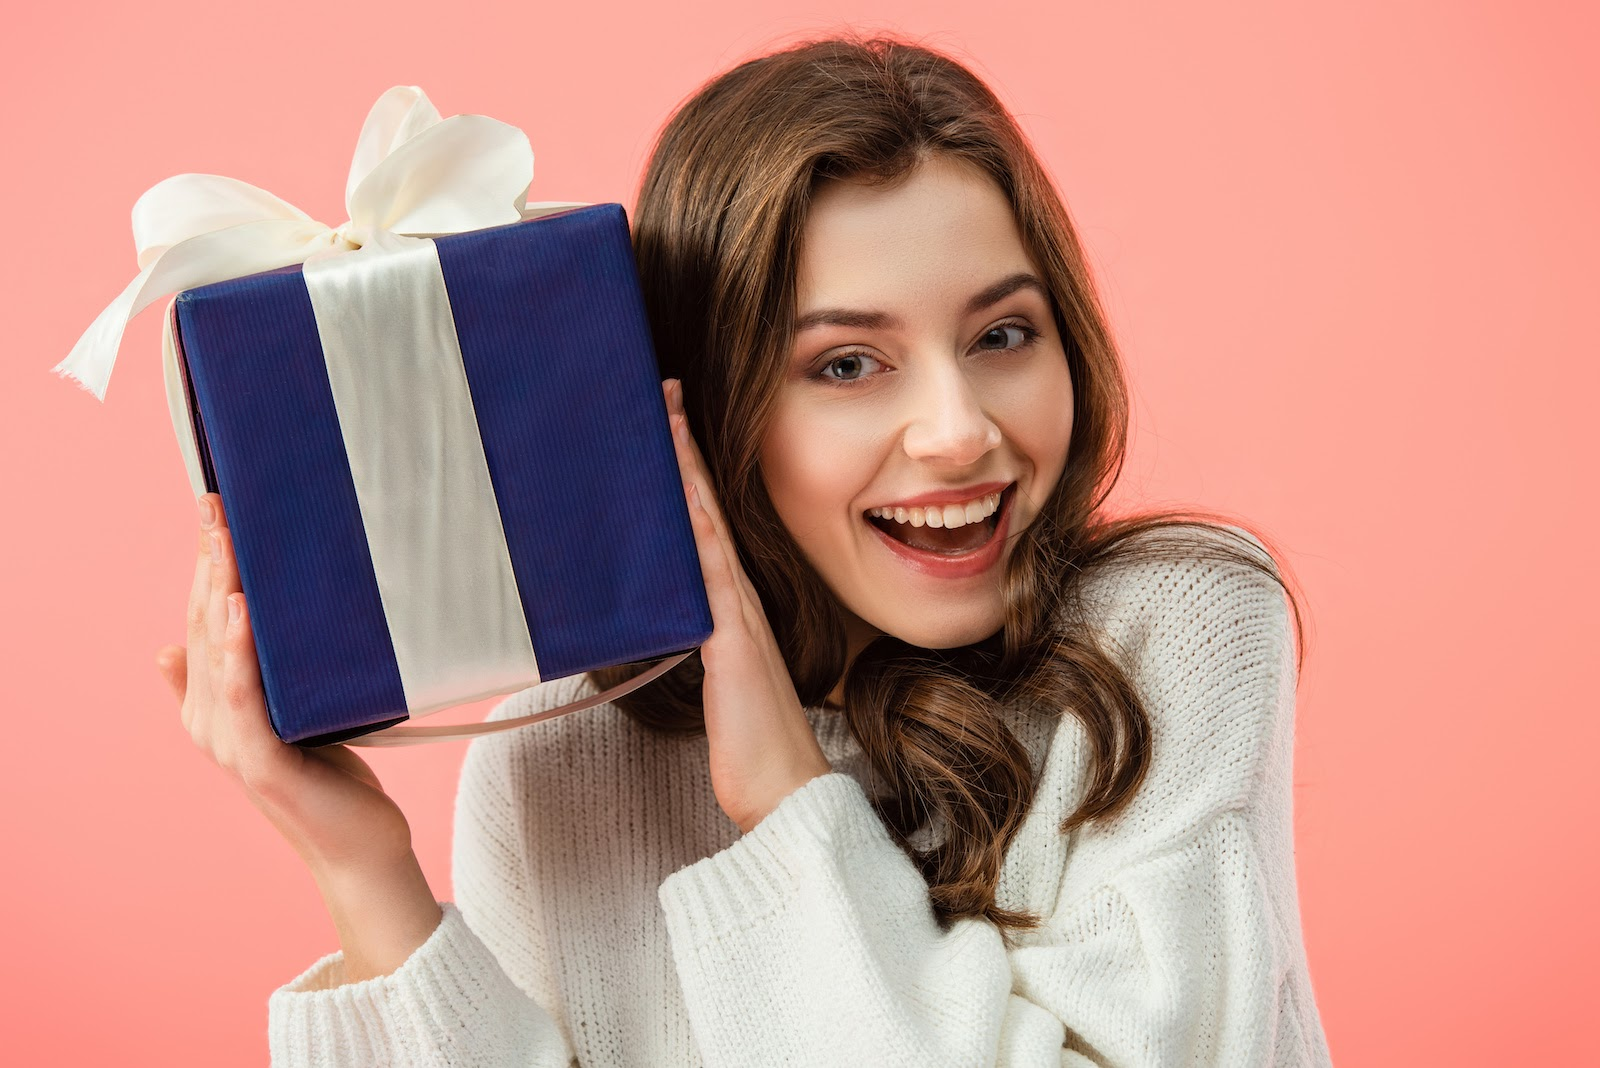 A virtual holiday party guests holds up a wrapped gift from a Secret Santa gift exchange